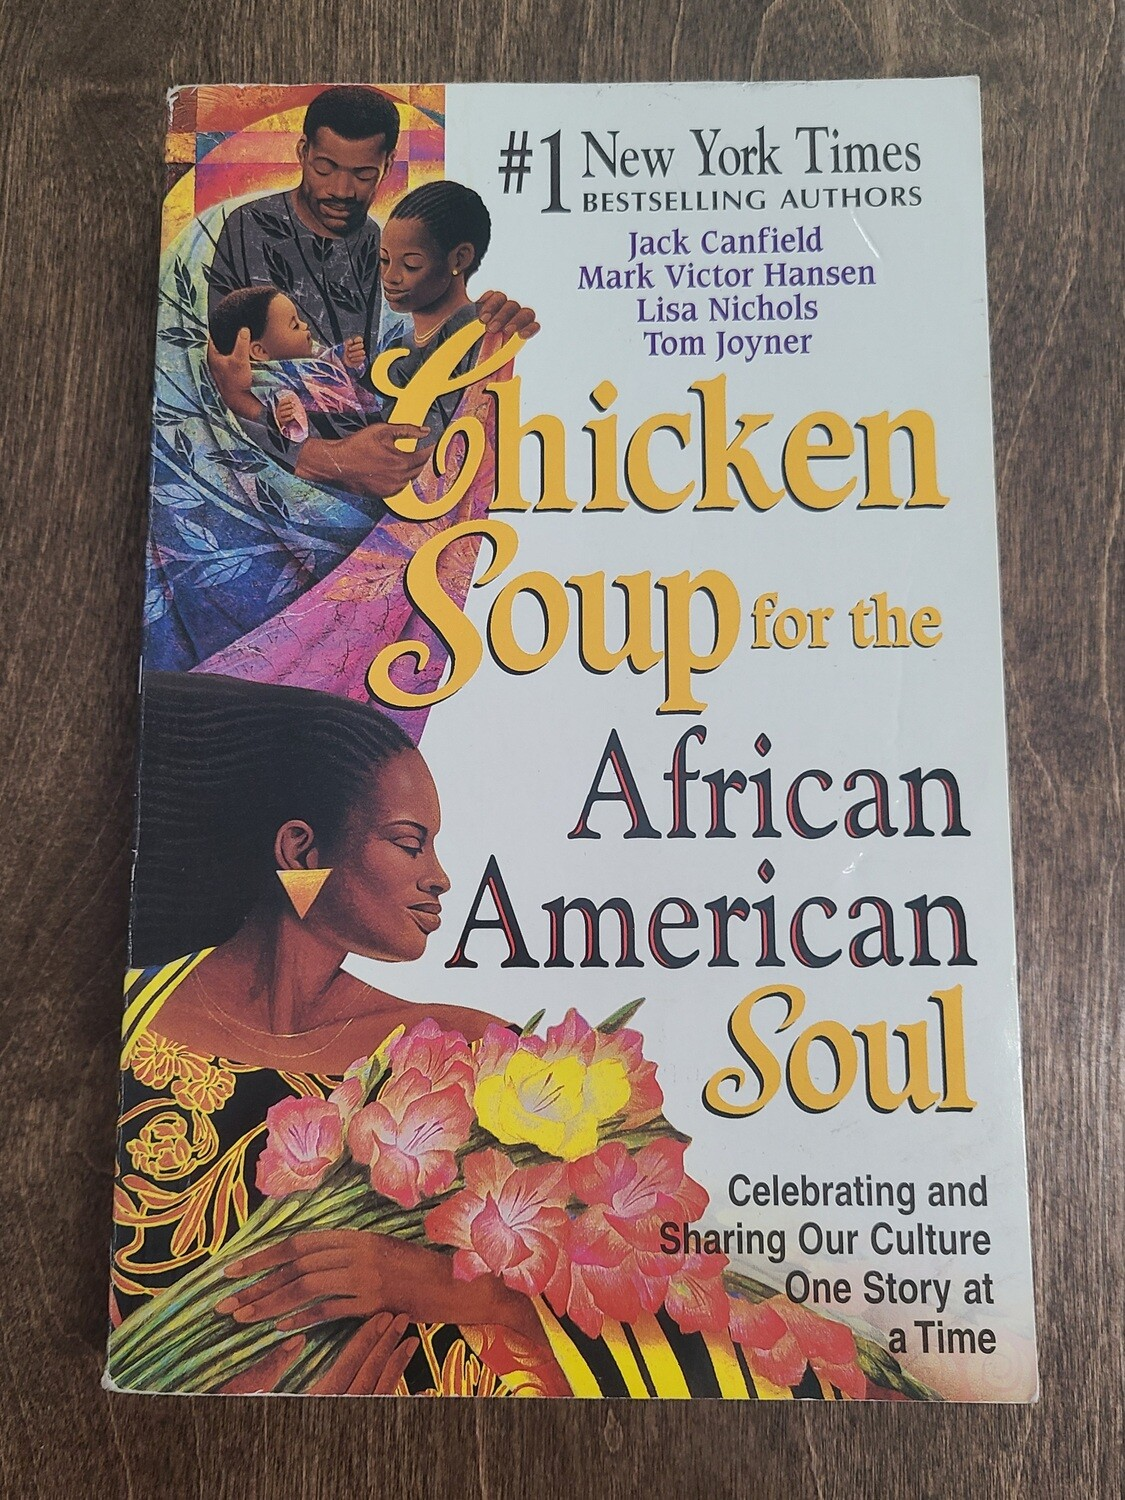 Chicken Soup for the African American Soul by Jack Canfield, Mark Victor Hansen, Lisa Nichols, and Tom Joyner